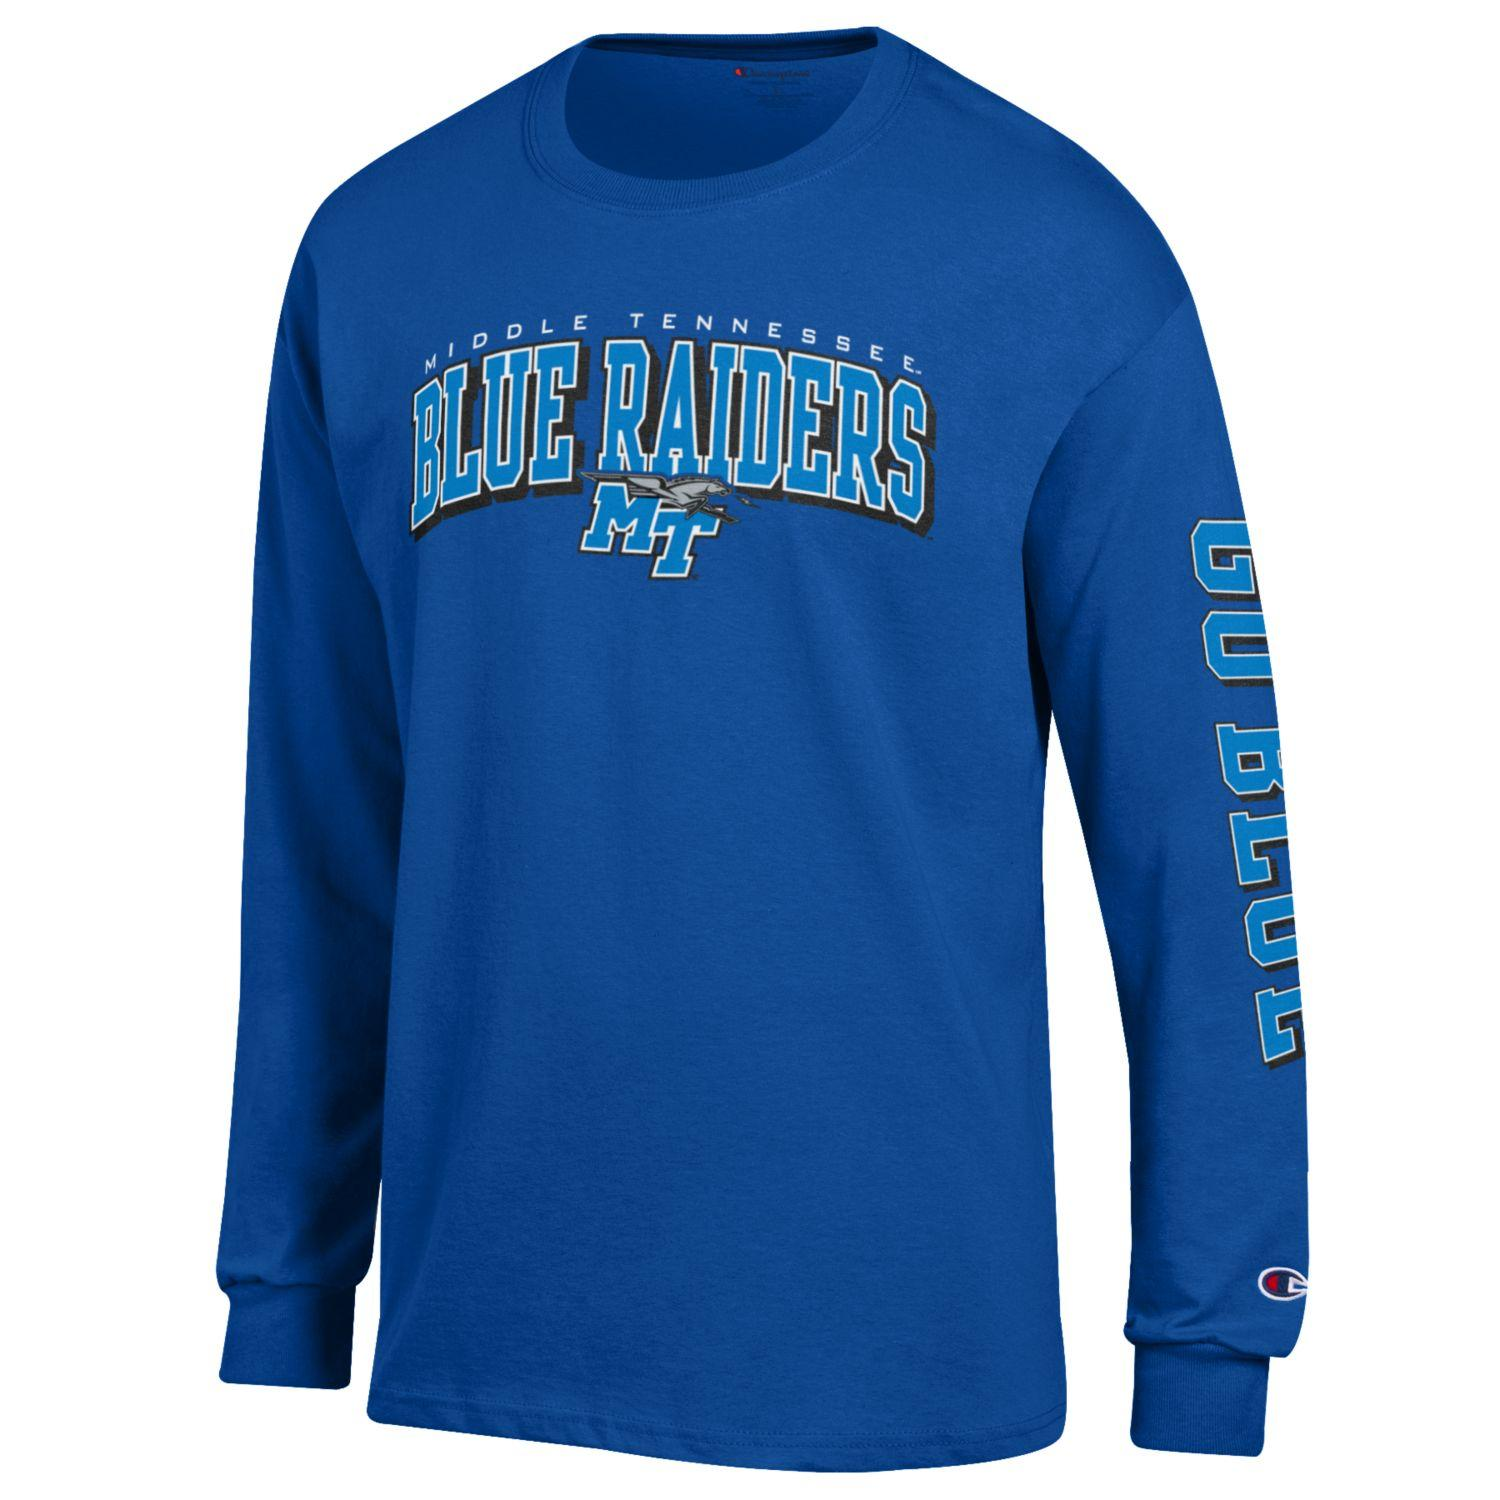 Middle Tennessee Blue Raiders Go Blue Long Sleeve Shirt